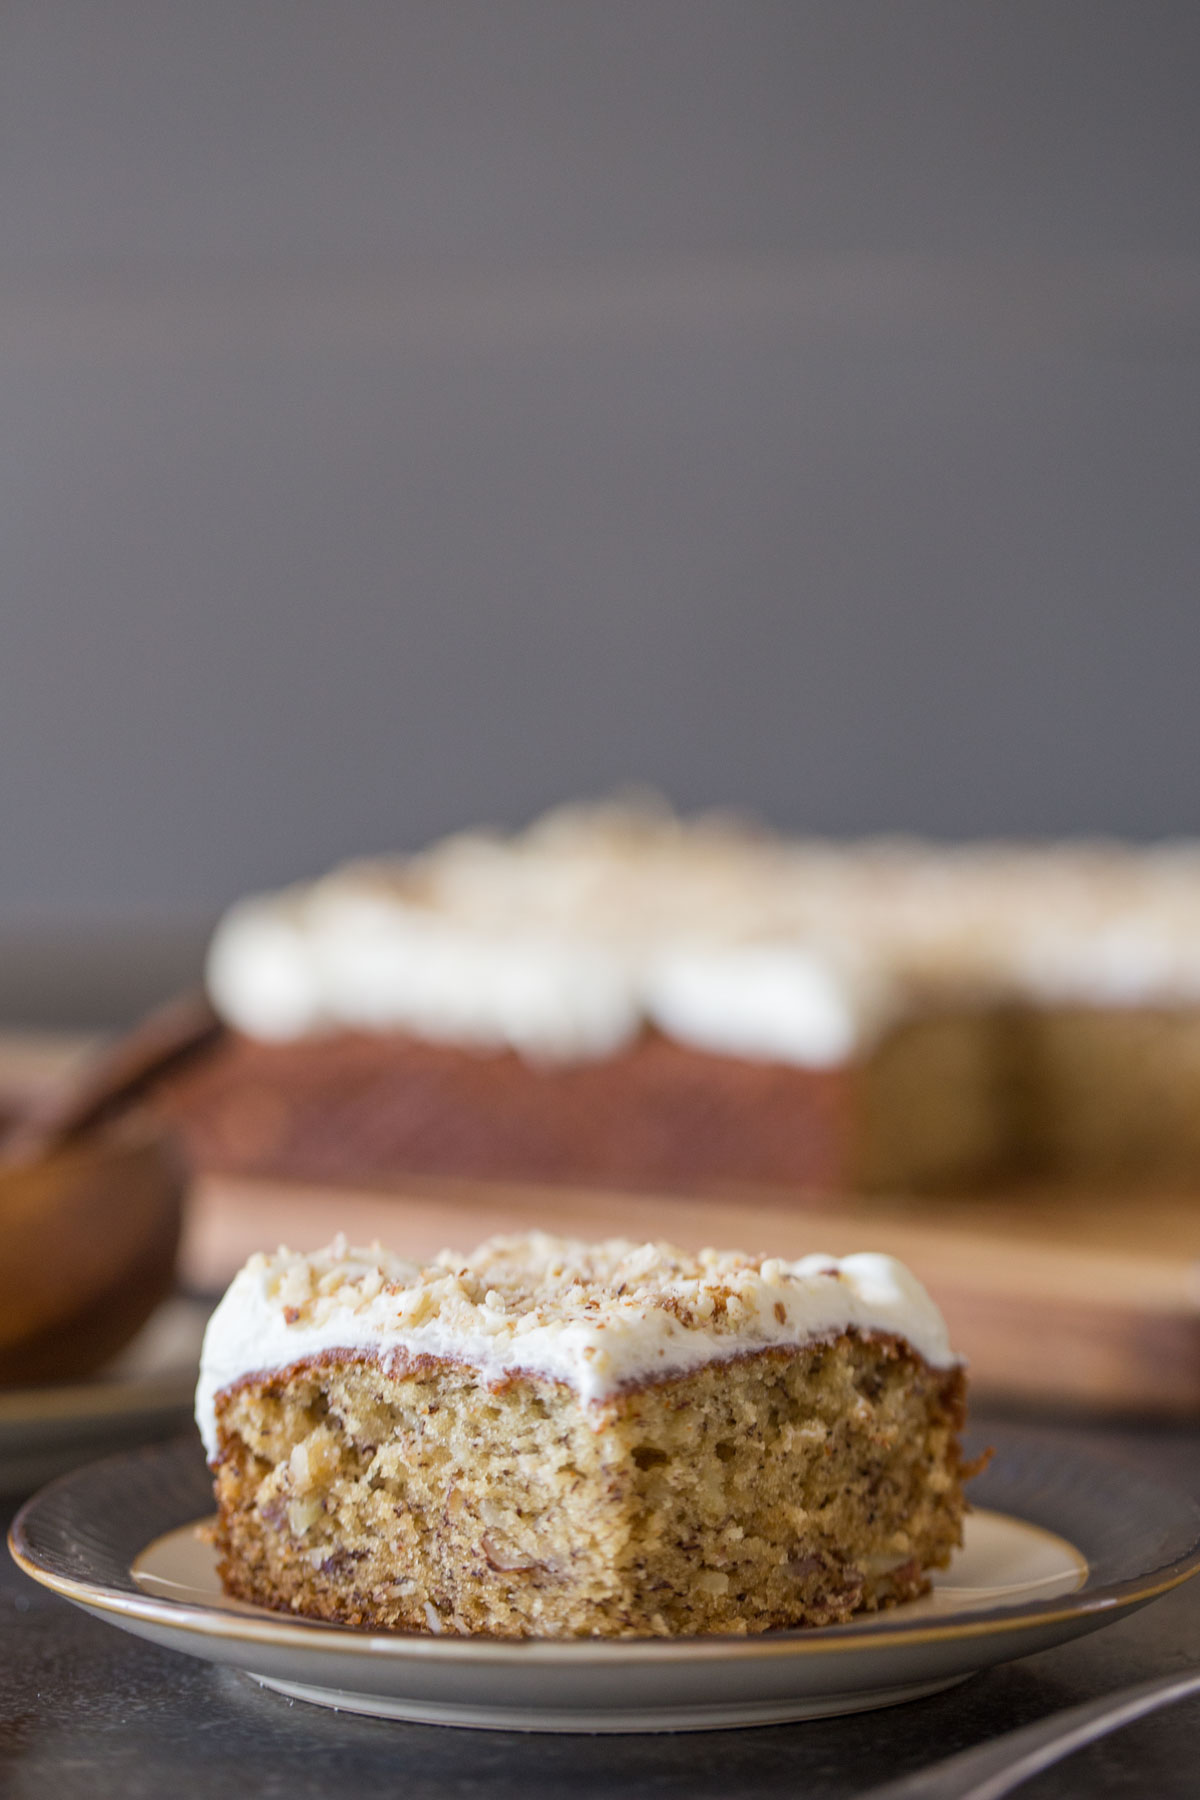 A piece of Banana Cake with Fluffy Cream Cheese Frosting on a plate, with the rest of the cake in the background.